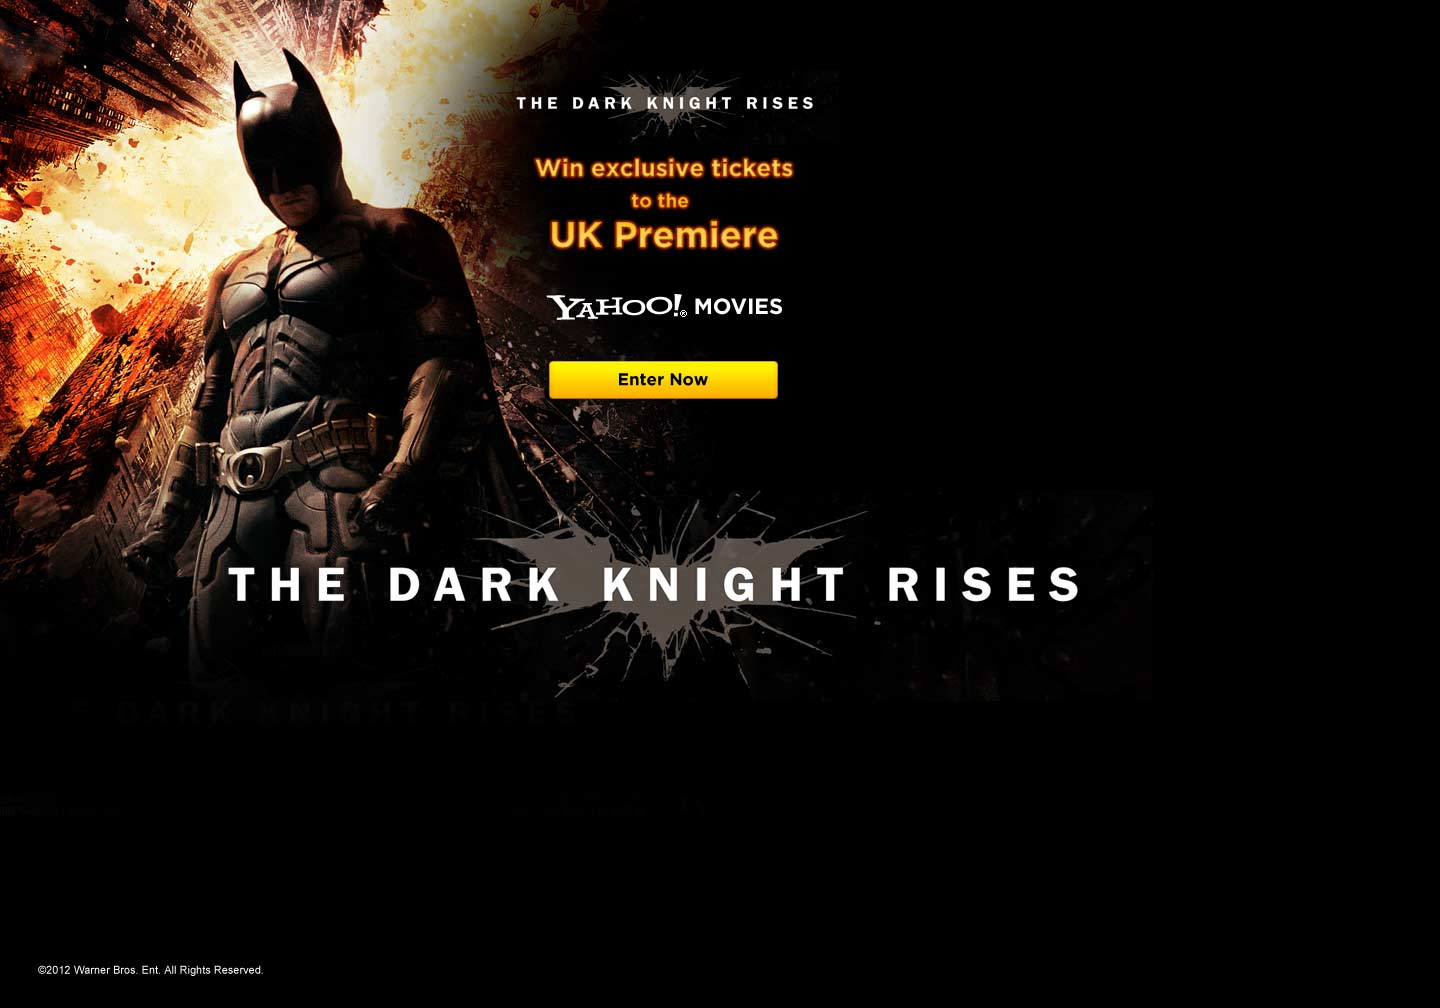 Win tickets to the Dark Knight Rises premiere - advertsing - Web Design Farnborough, Hampshire